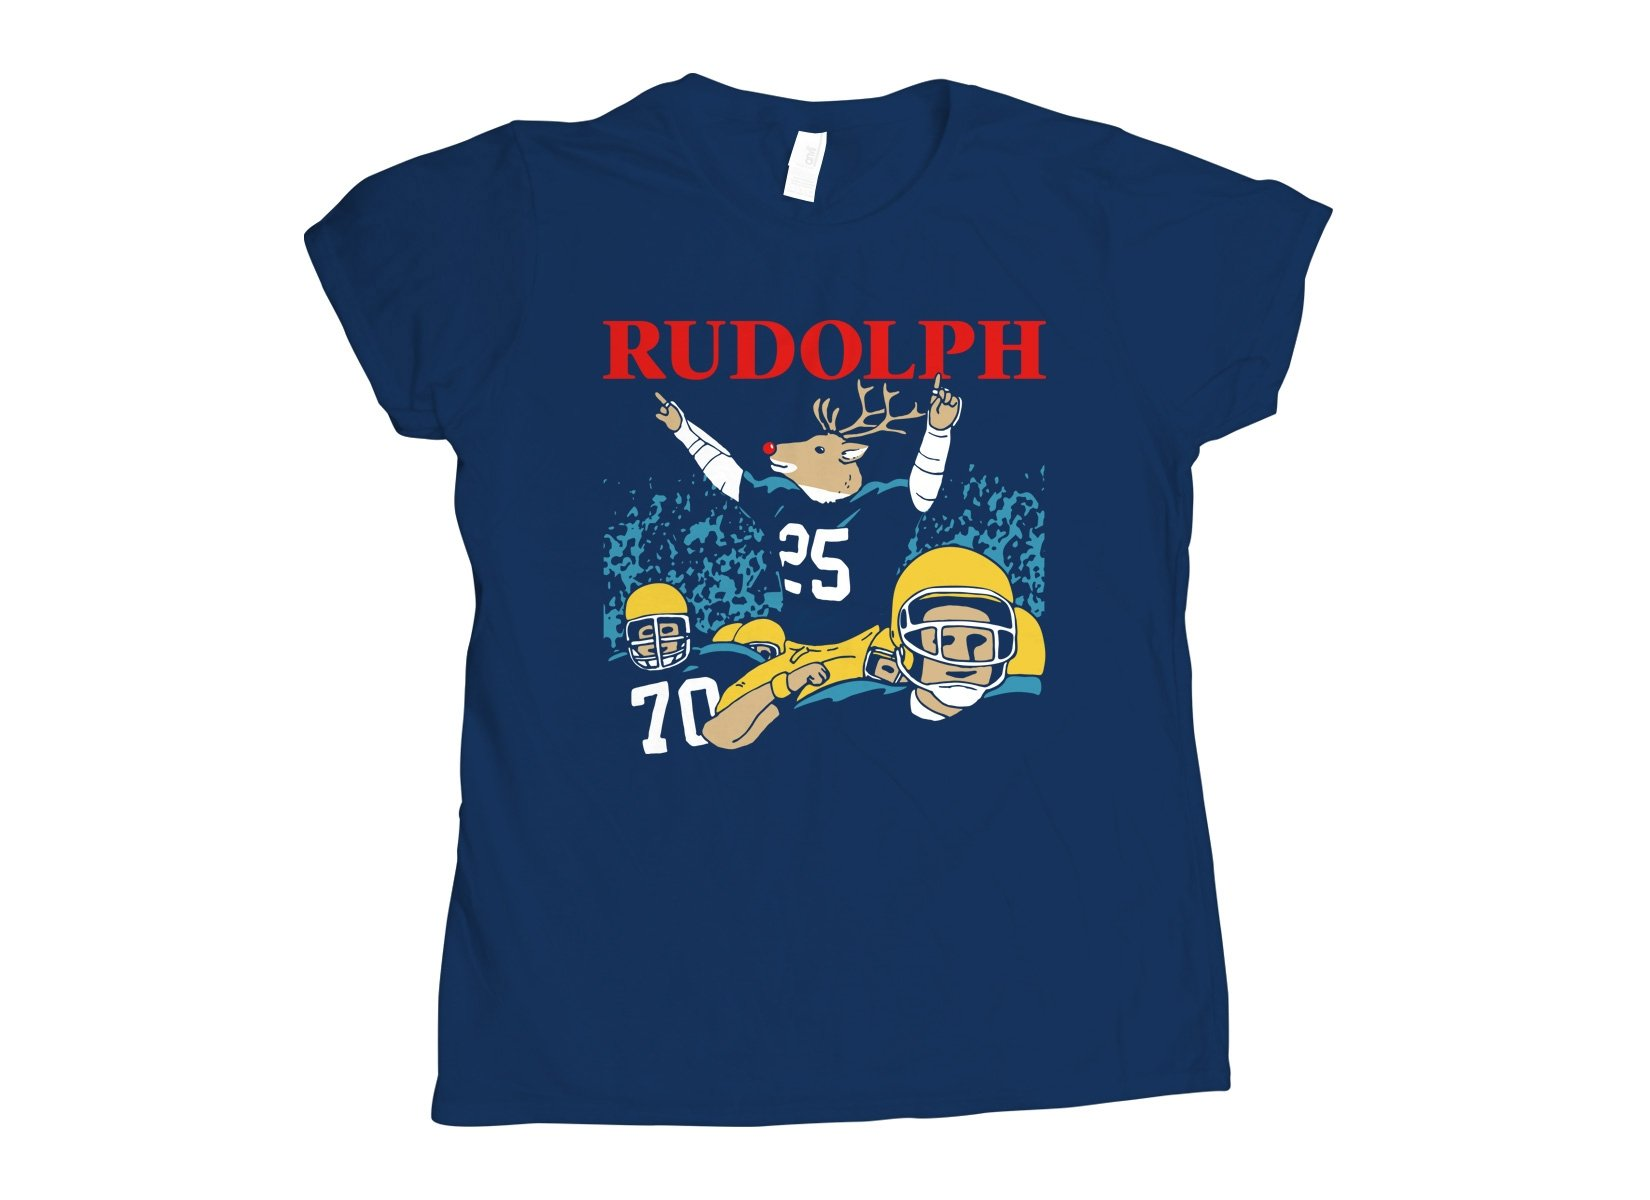 Rudolph on Womens T-Shirt